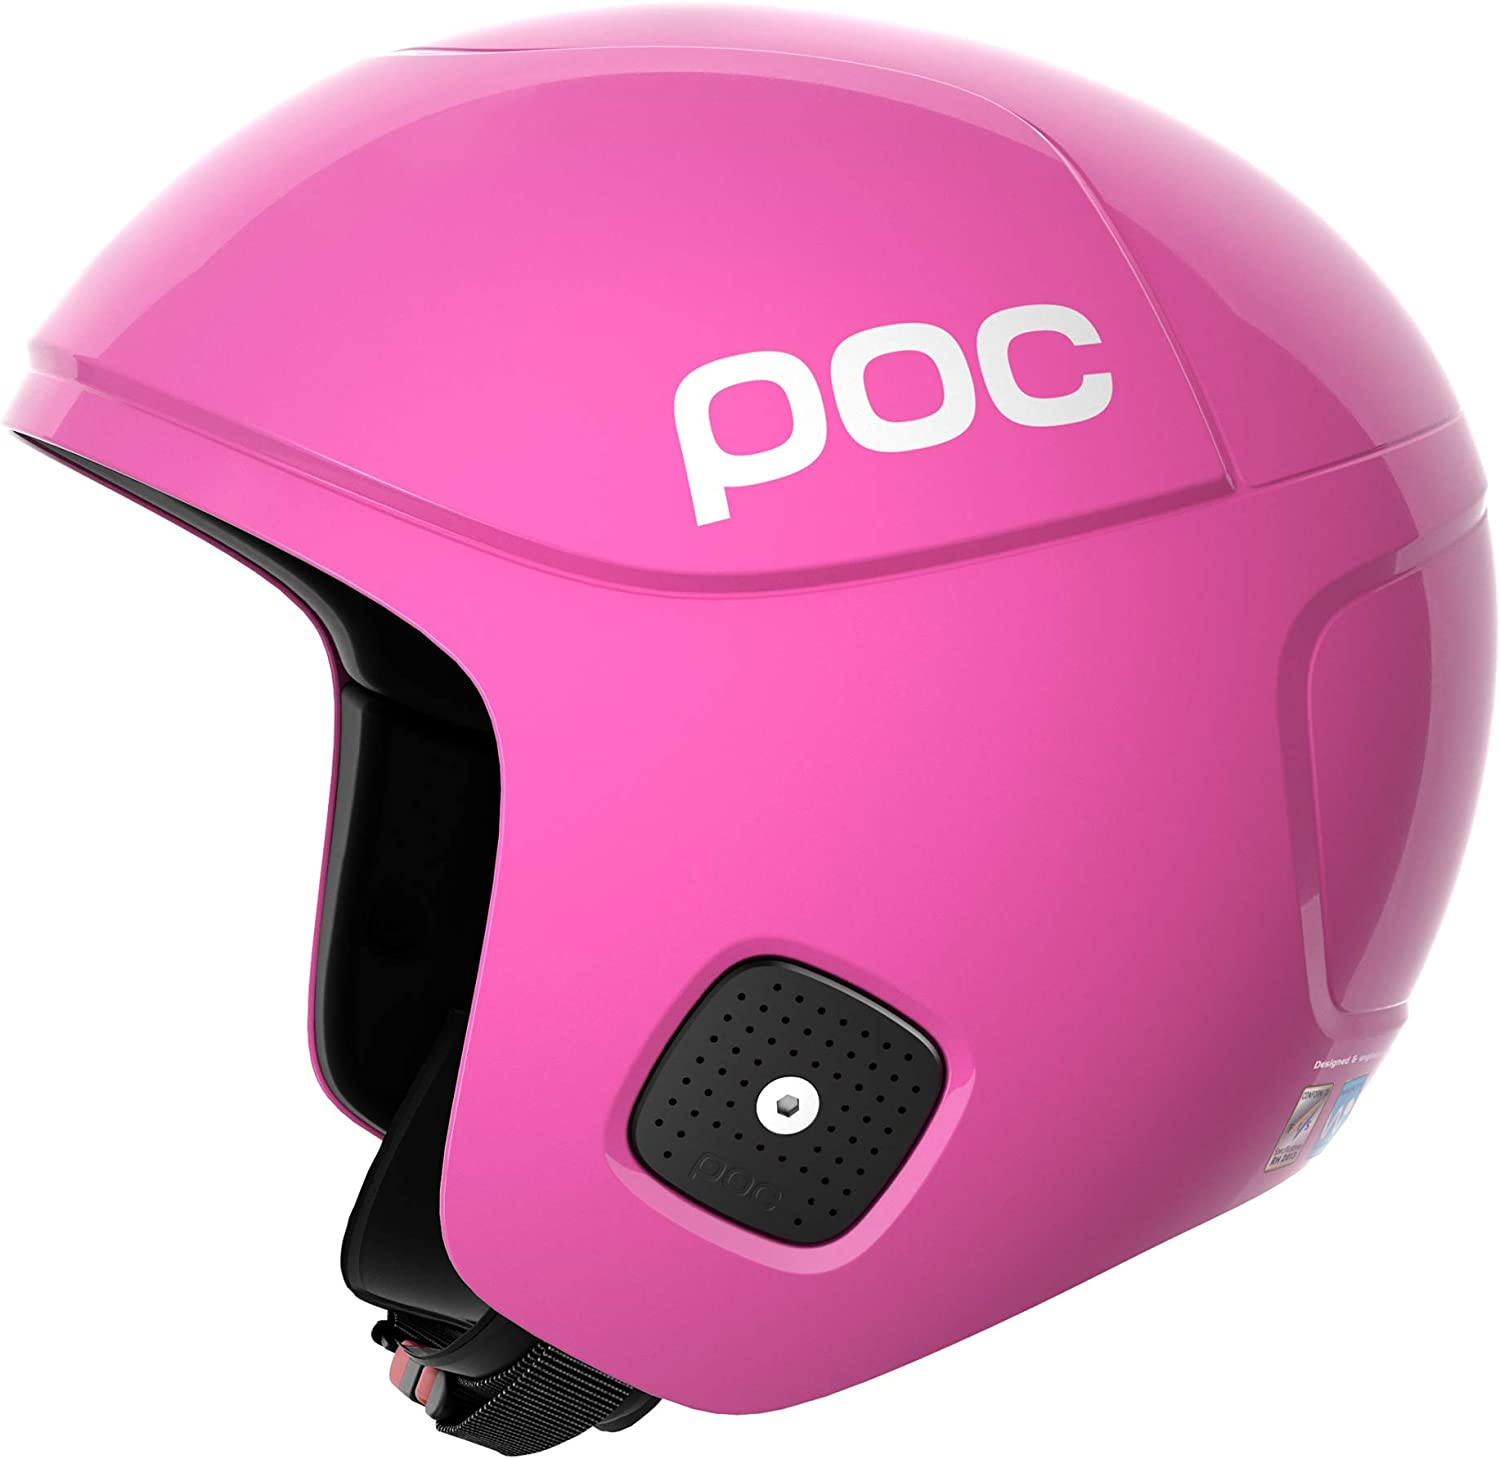 POC Skull Orbic X Spin online shopping High Pink Speed Race Actinium Helmet Large discharge sale